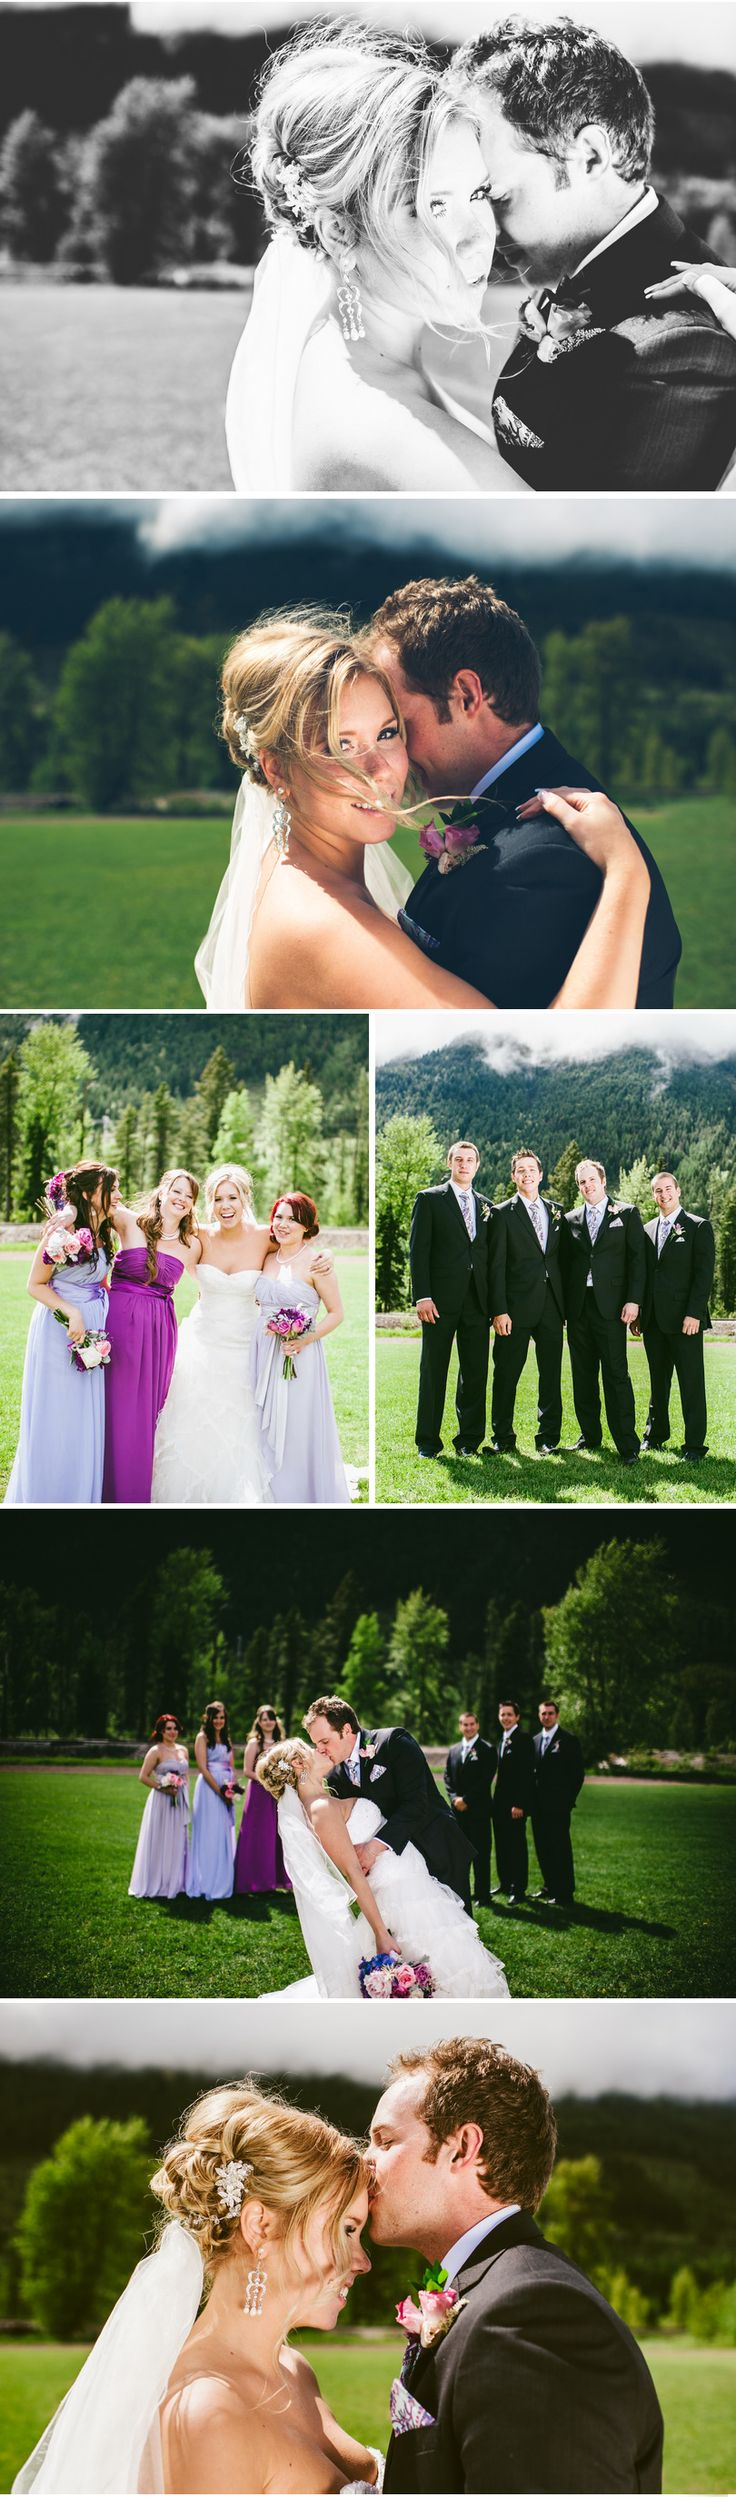 Destination Wedding in Fernie BC - Vancouver Wedding Photographer Dallas Kolotylo Photography_9